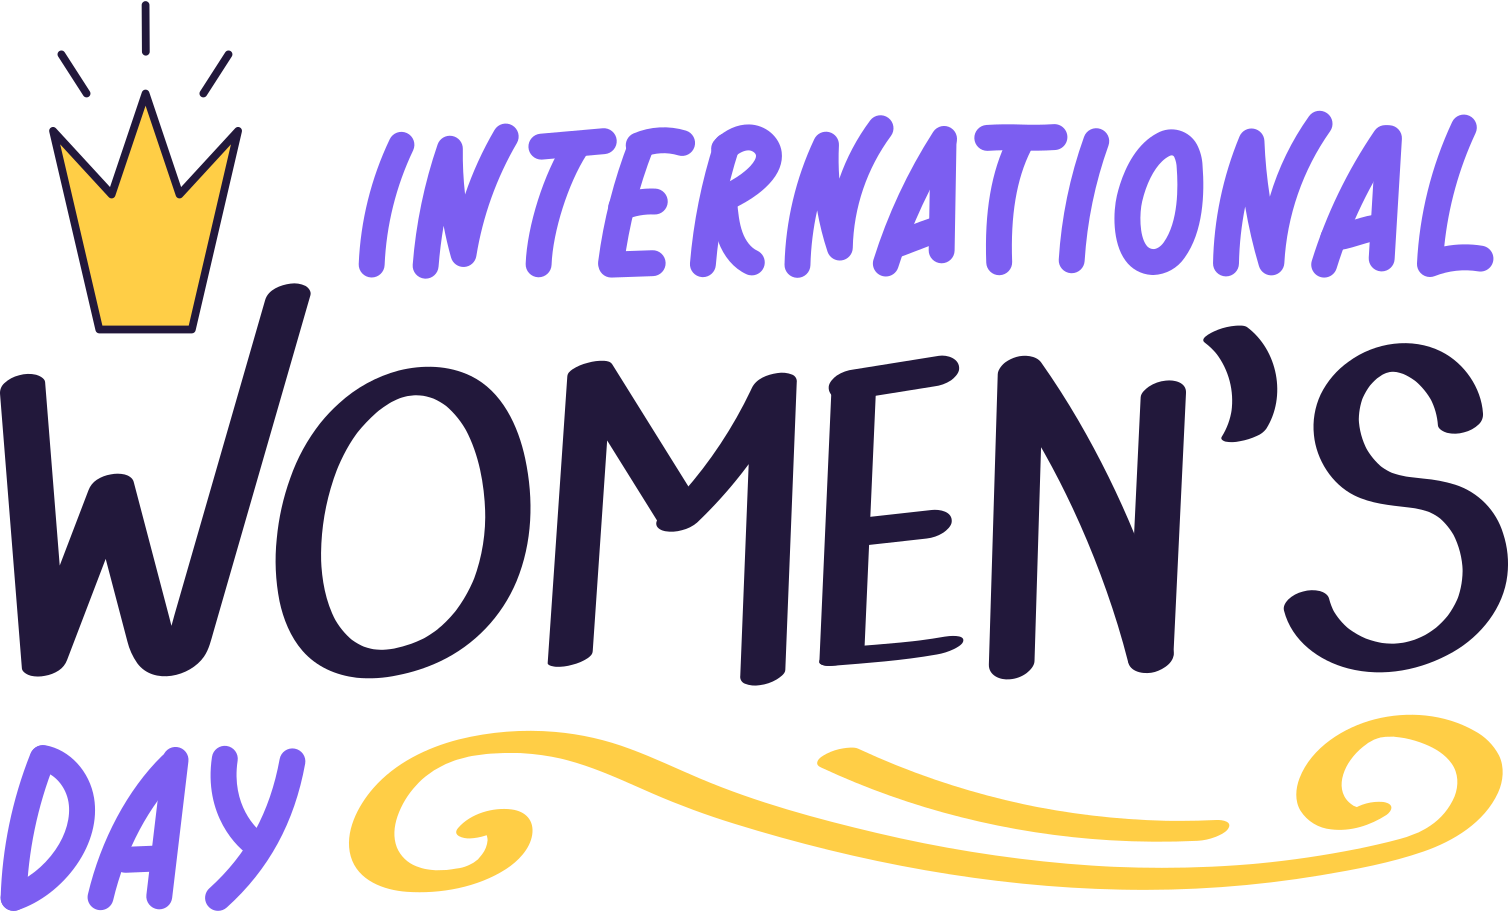 style international women day Vector images in PNG and SVG | Icons8 Illustrations